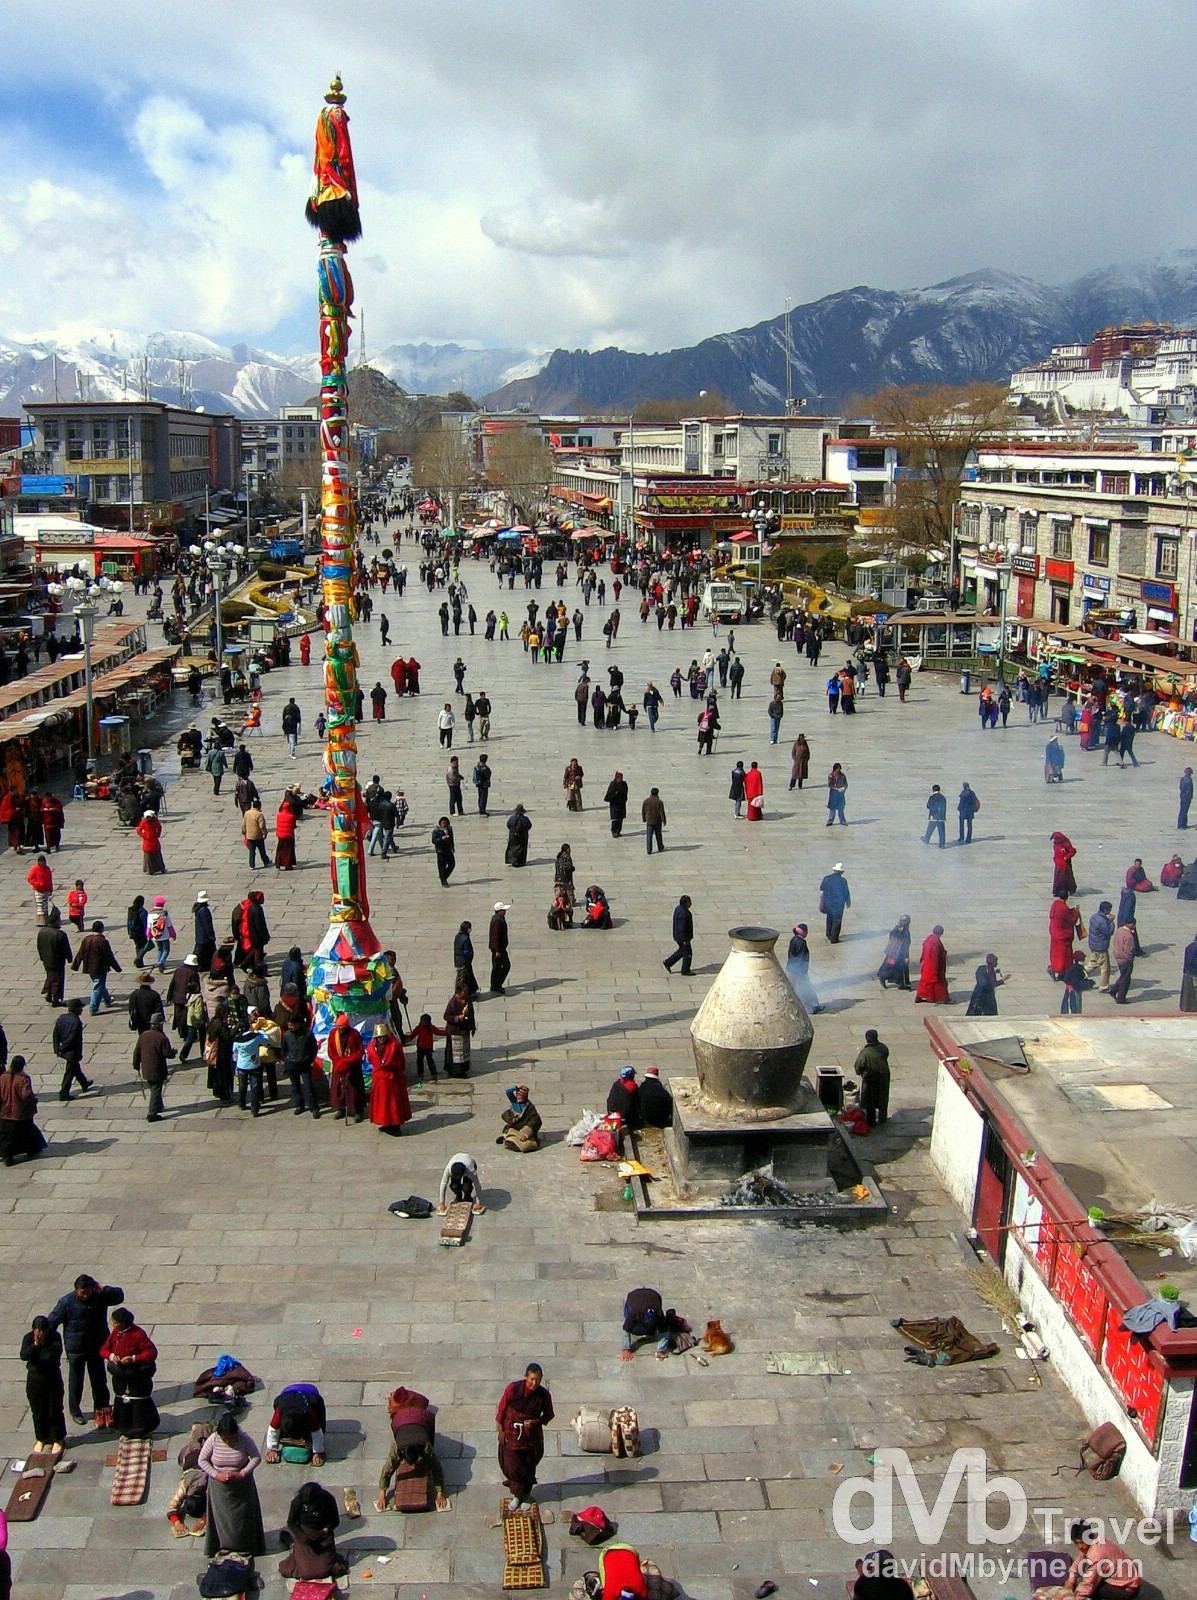 Barkhor Square as seen from the roof of the Jokhang Temple, Lhasa, Tibet. February 27th, 2008.